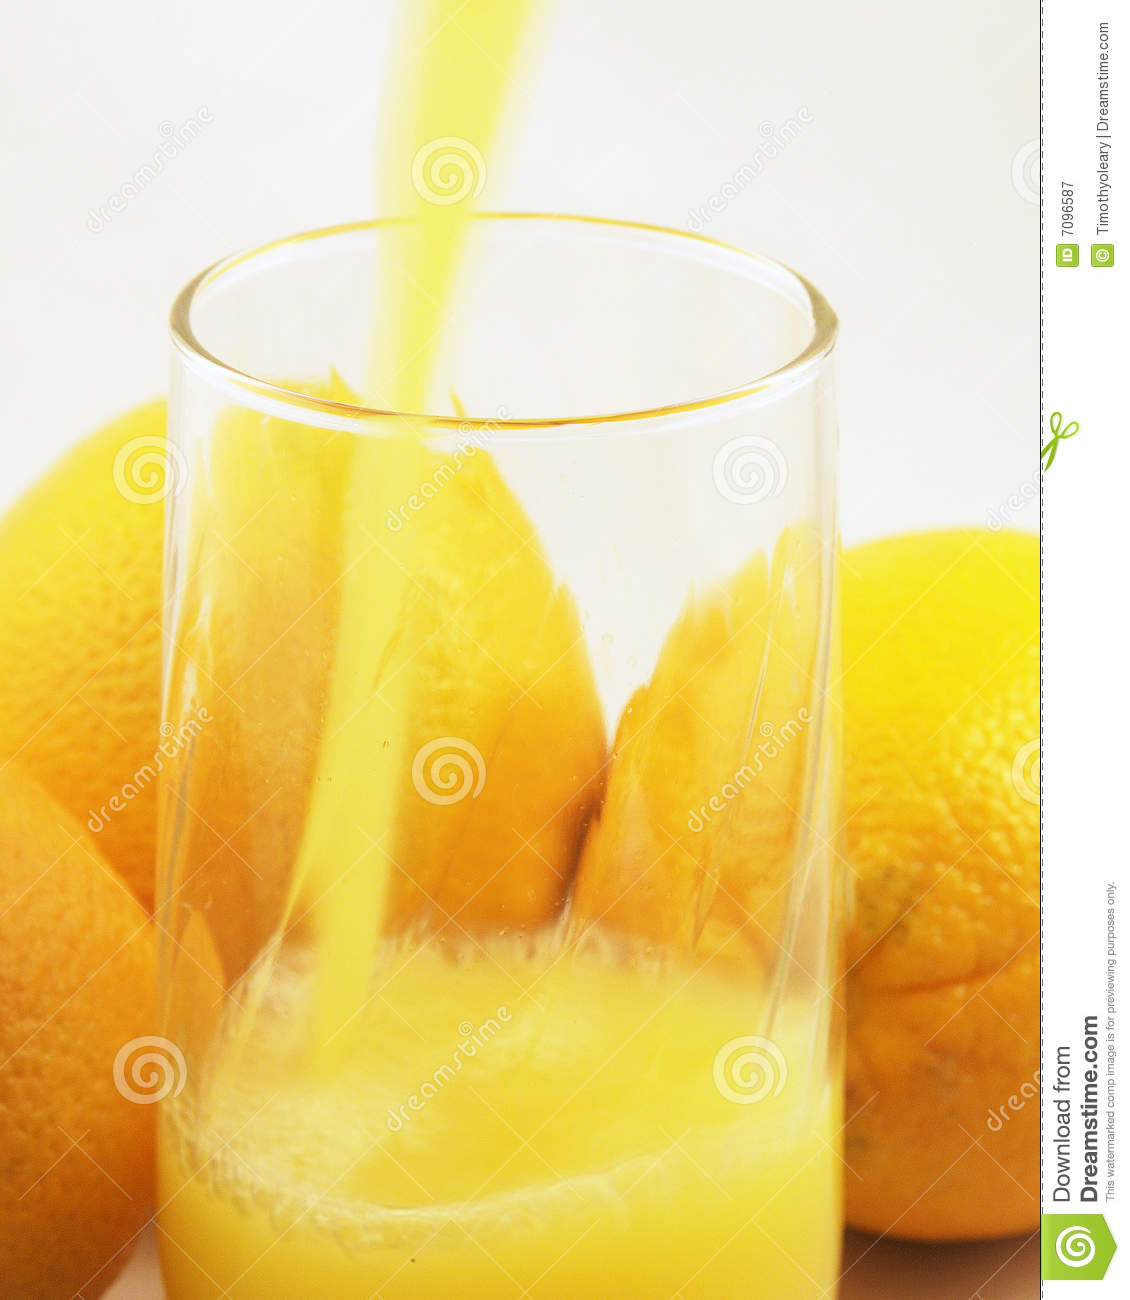 Orange juice pour royalty free stock photography image for Wine and orange juice name